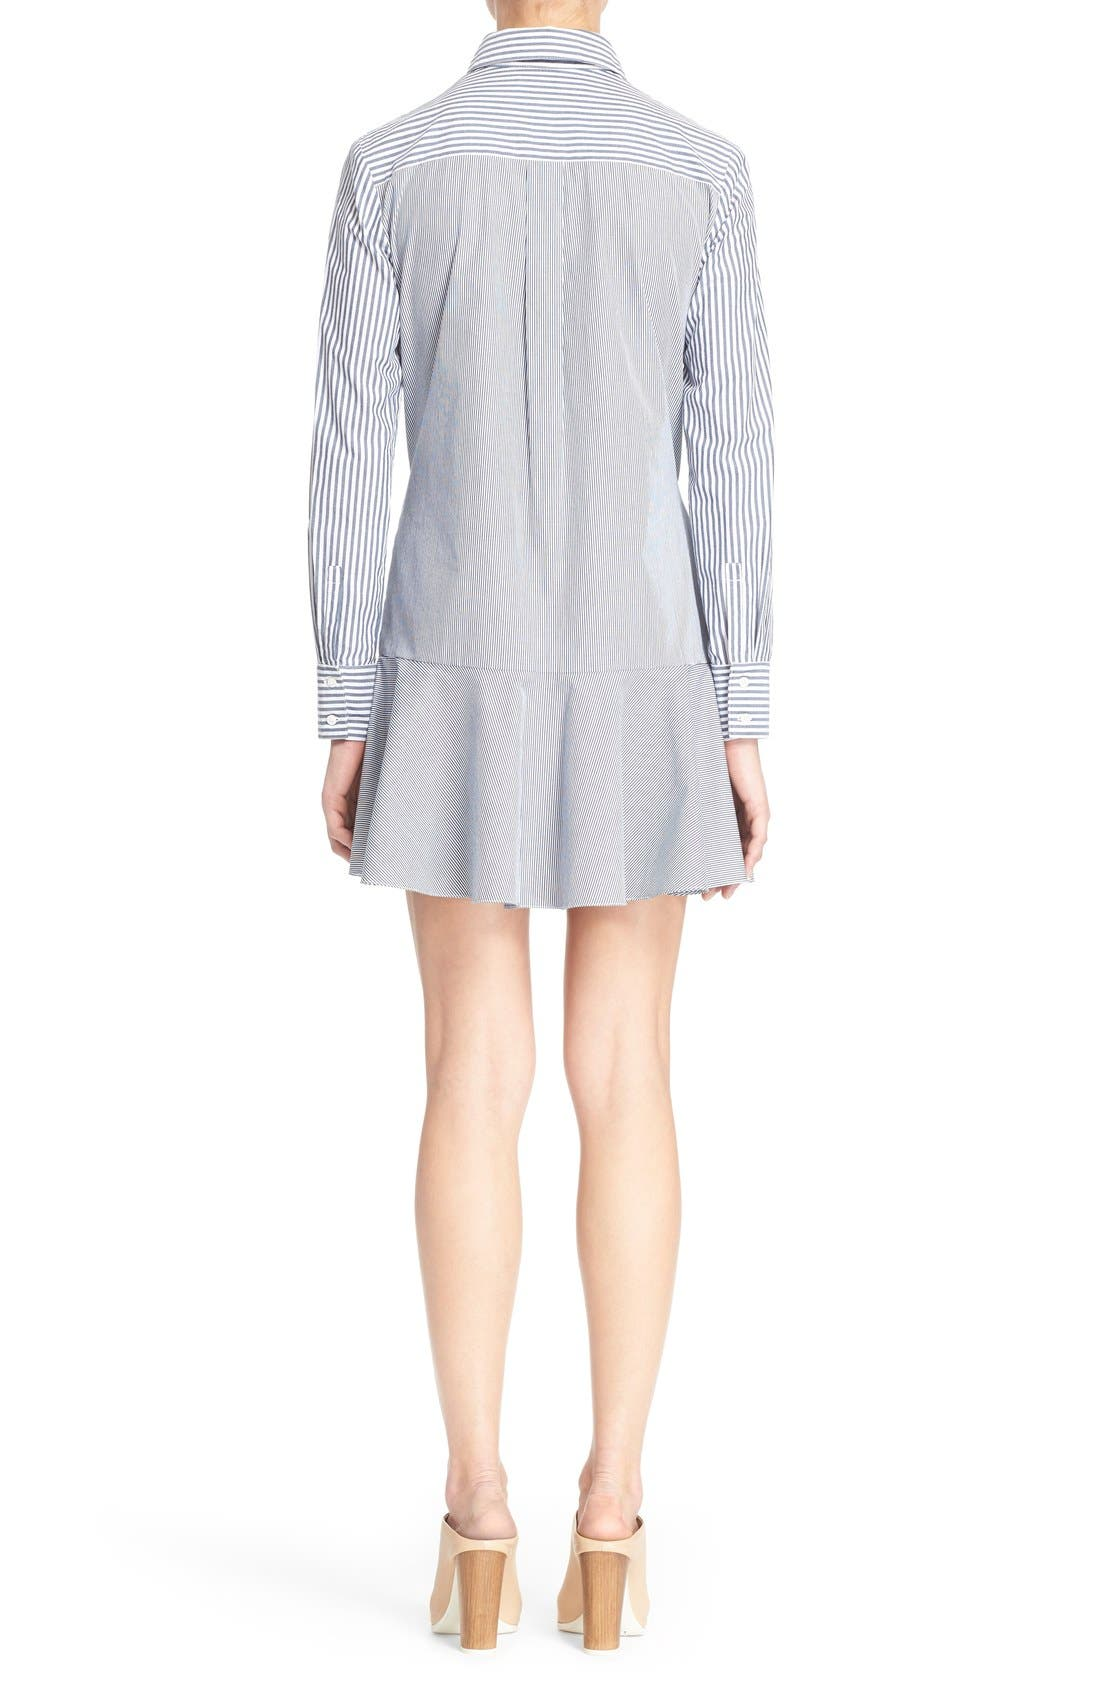 DEREK LAM 10 CROSBY, Tie Waist Shirtdress, Alternate thumbnail 4, color, 419